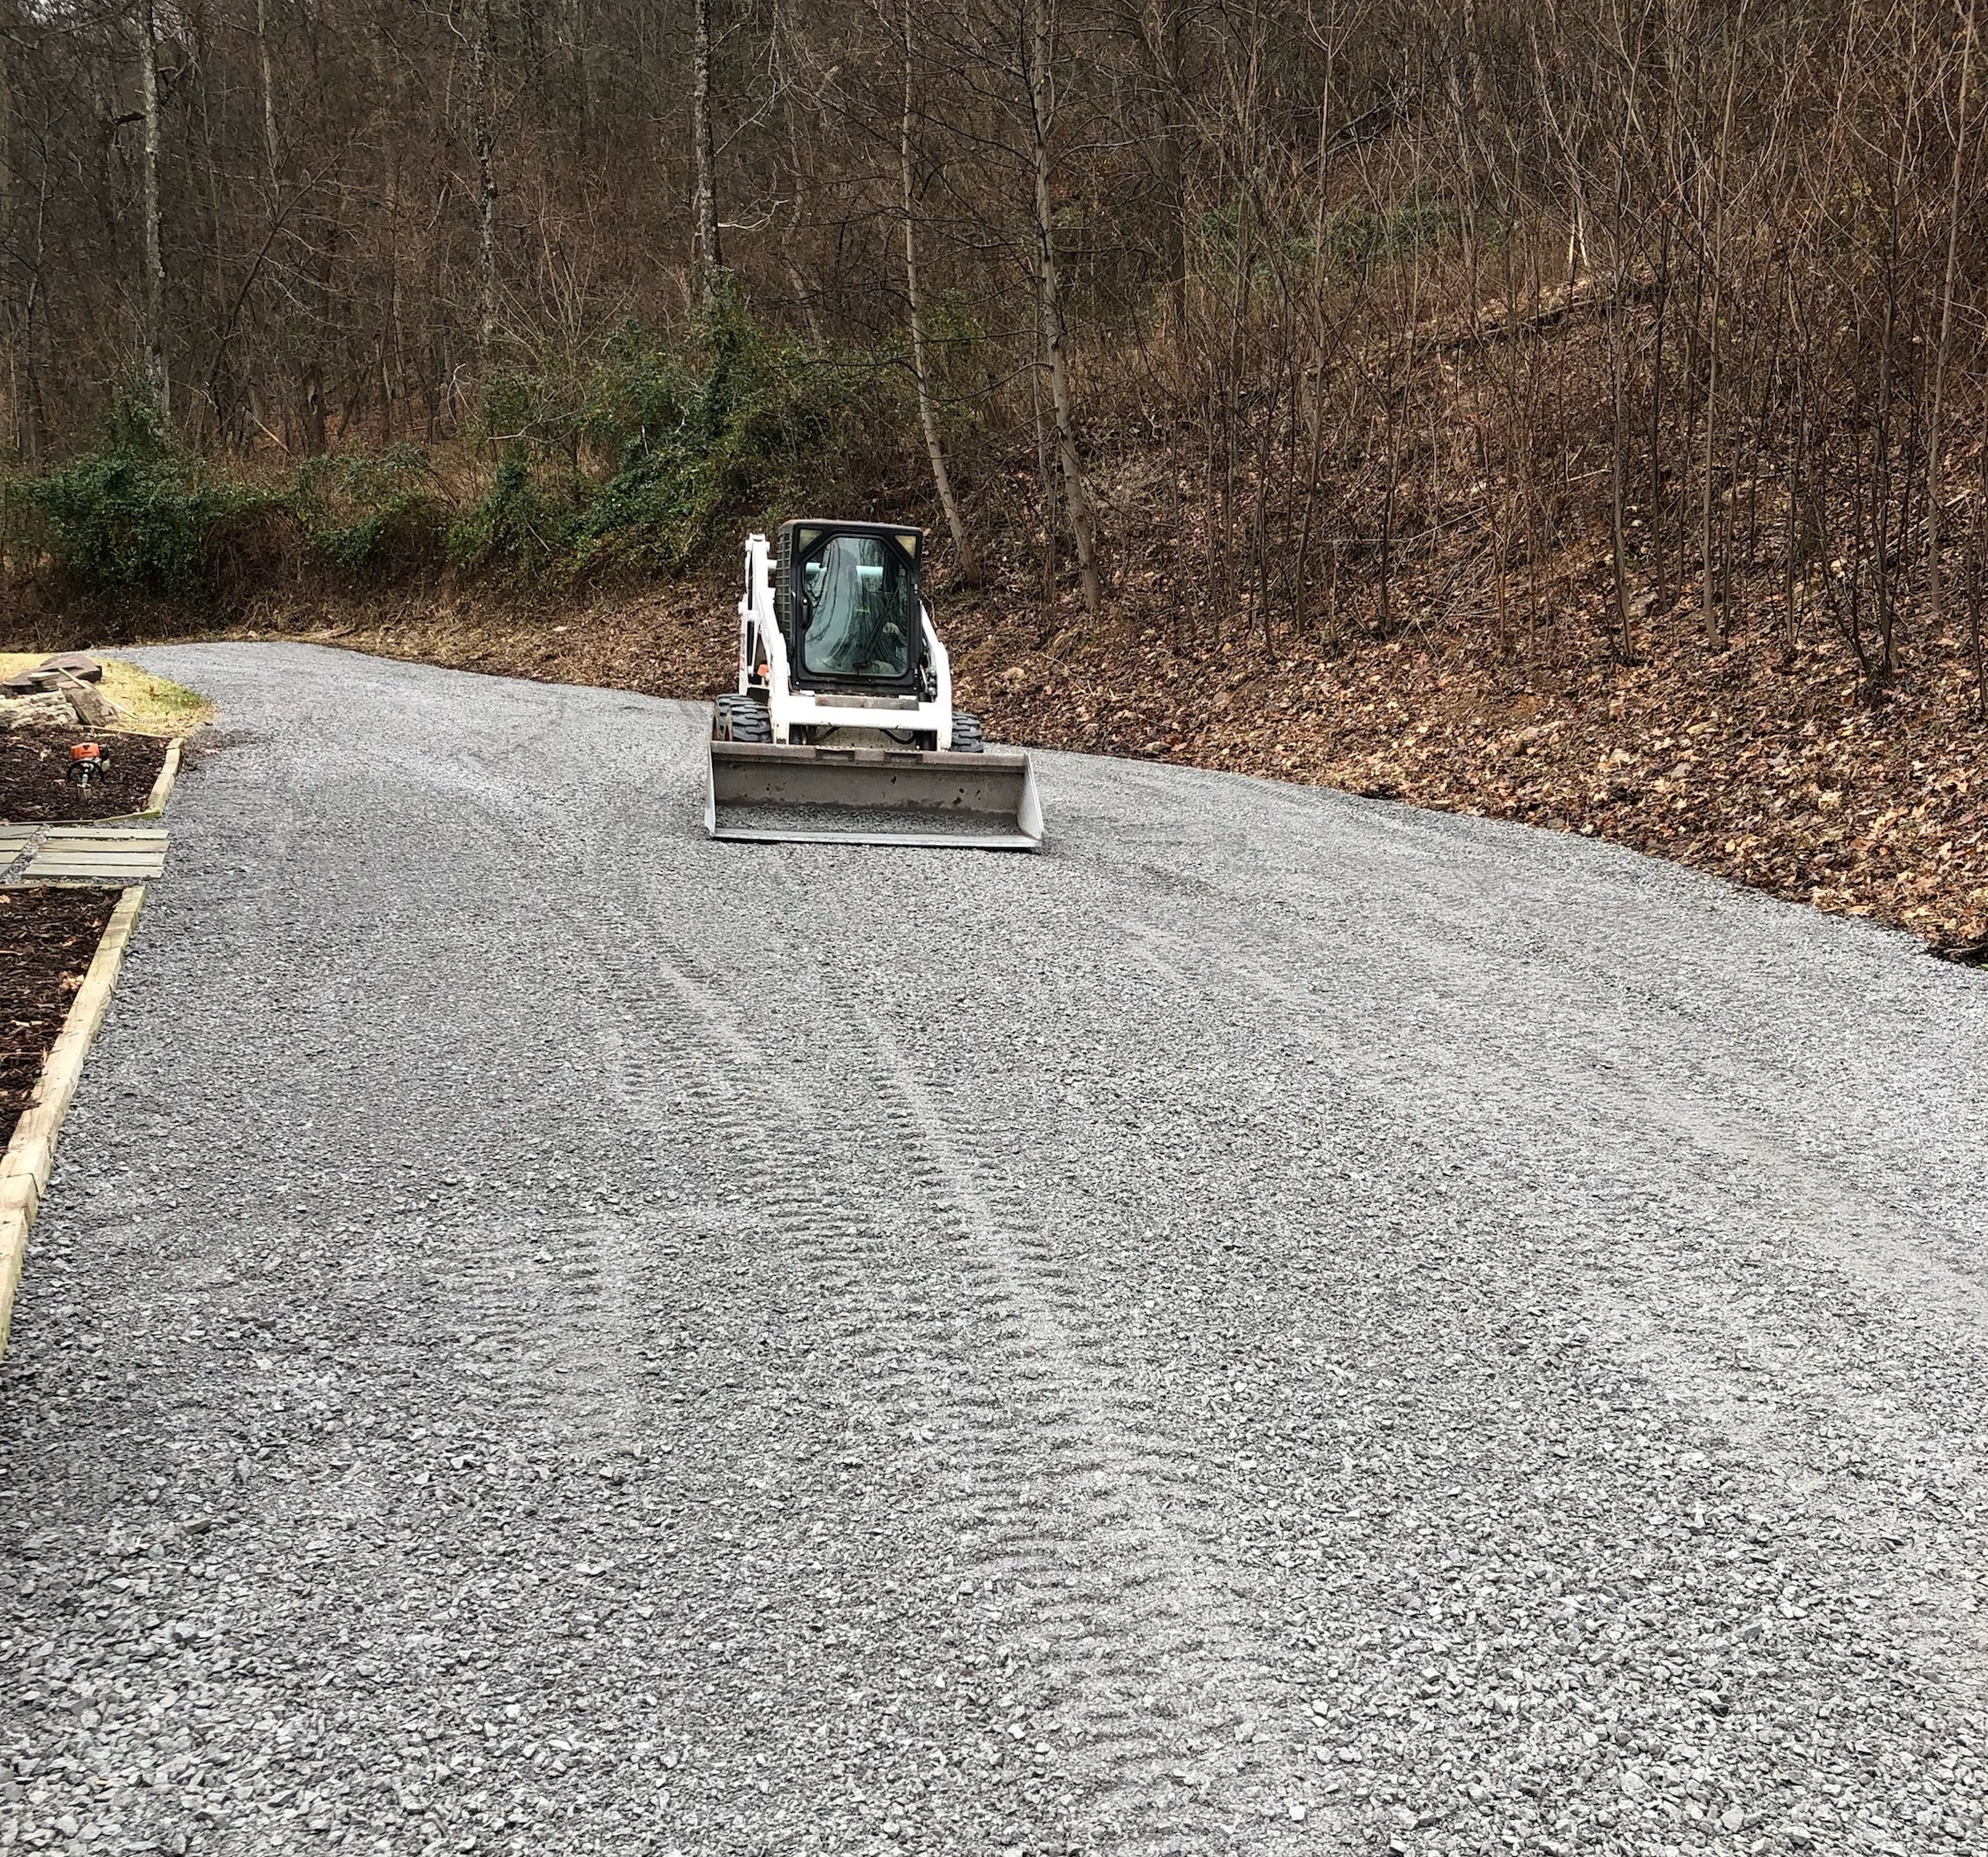 Skid Loader Services - -Driveway work-Excavation-Drainage-Brush clearing-Post hole digging